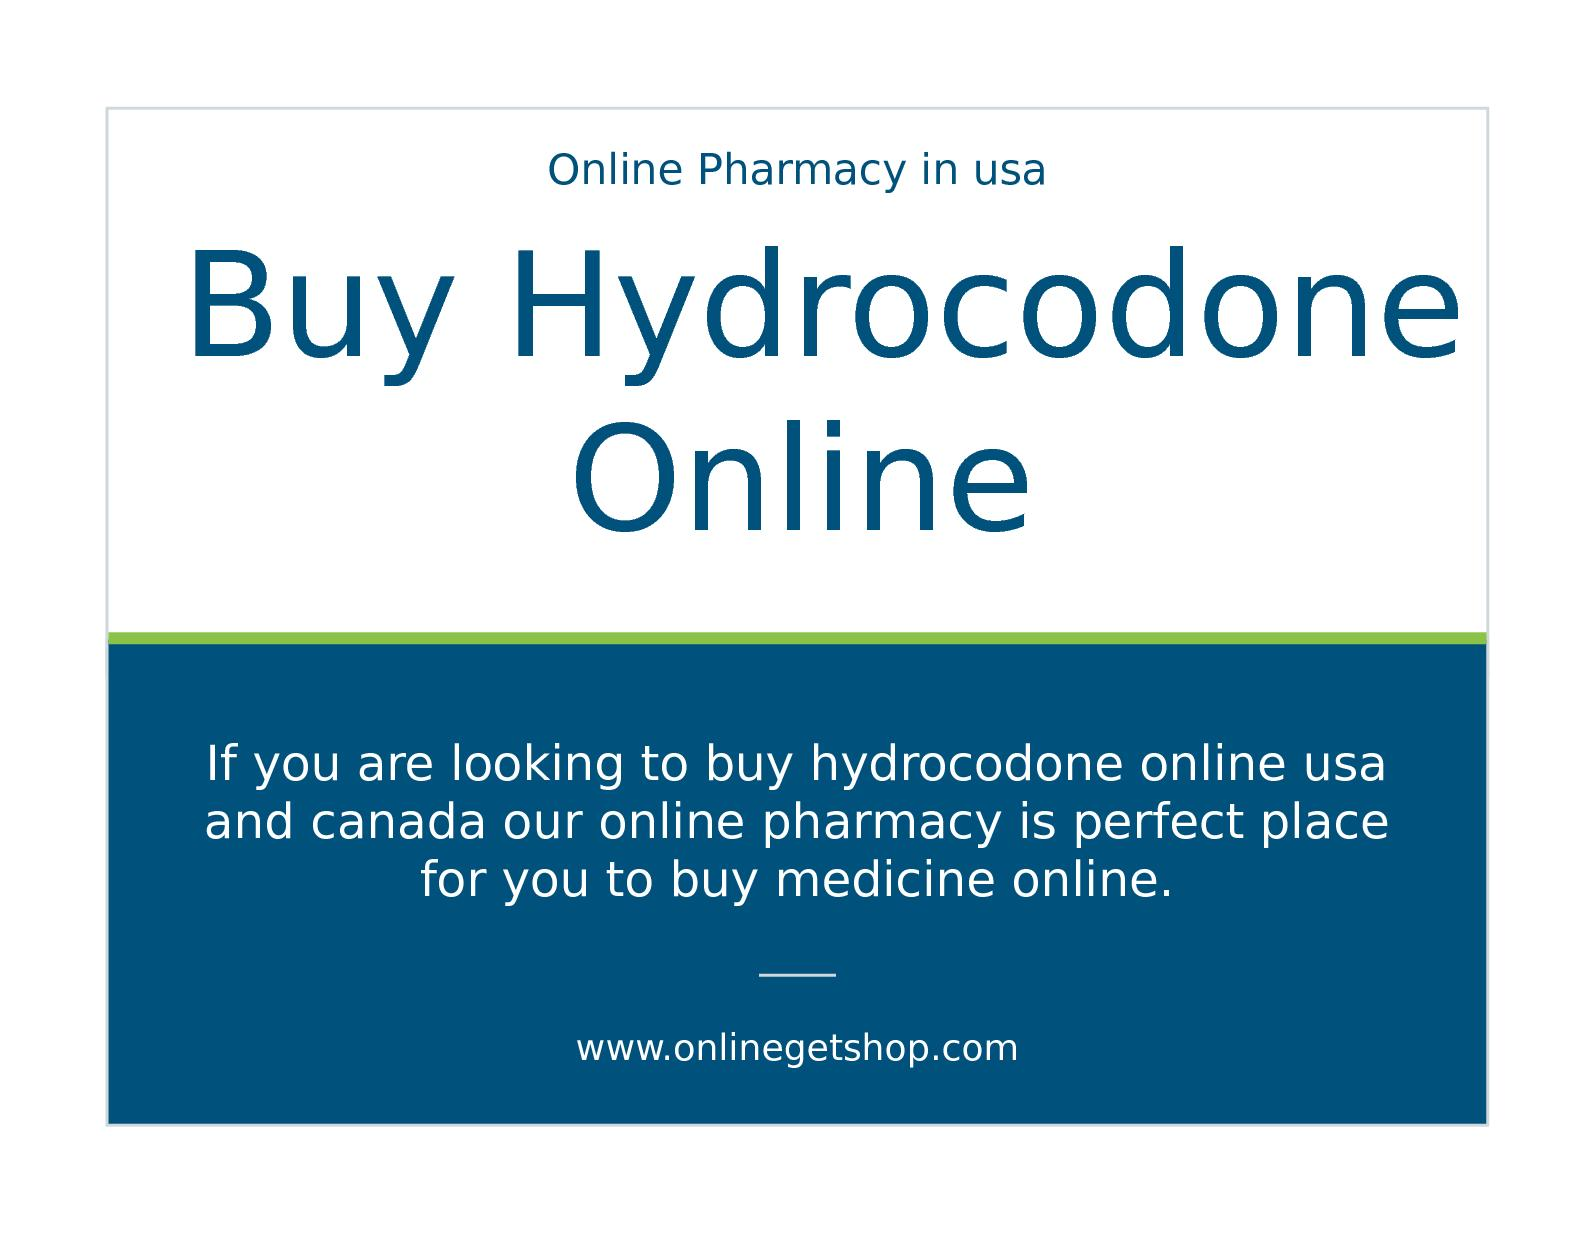 Best place to buy hydrocodone online